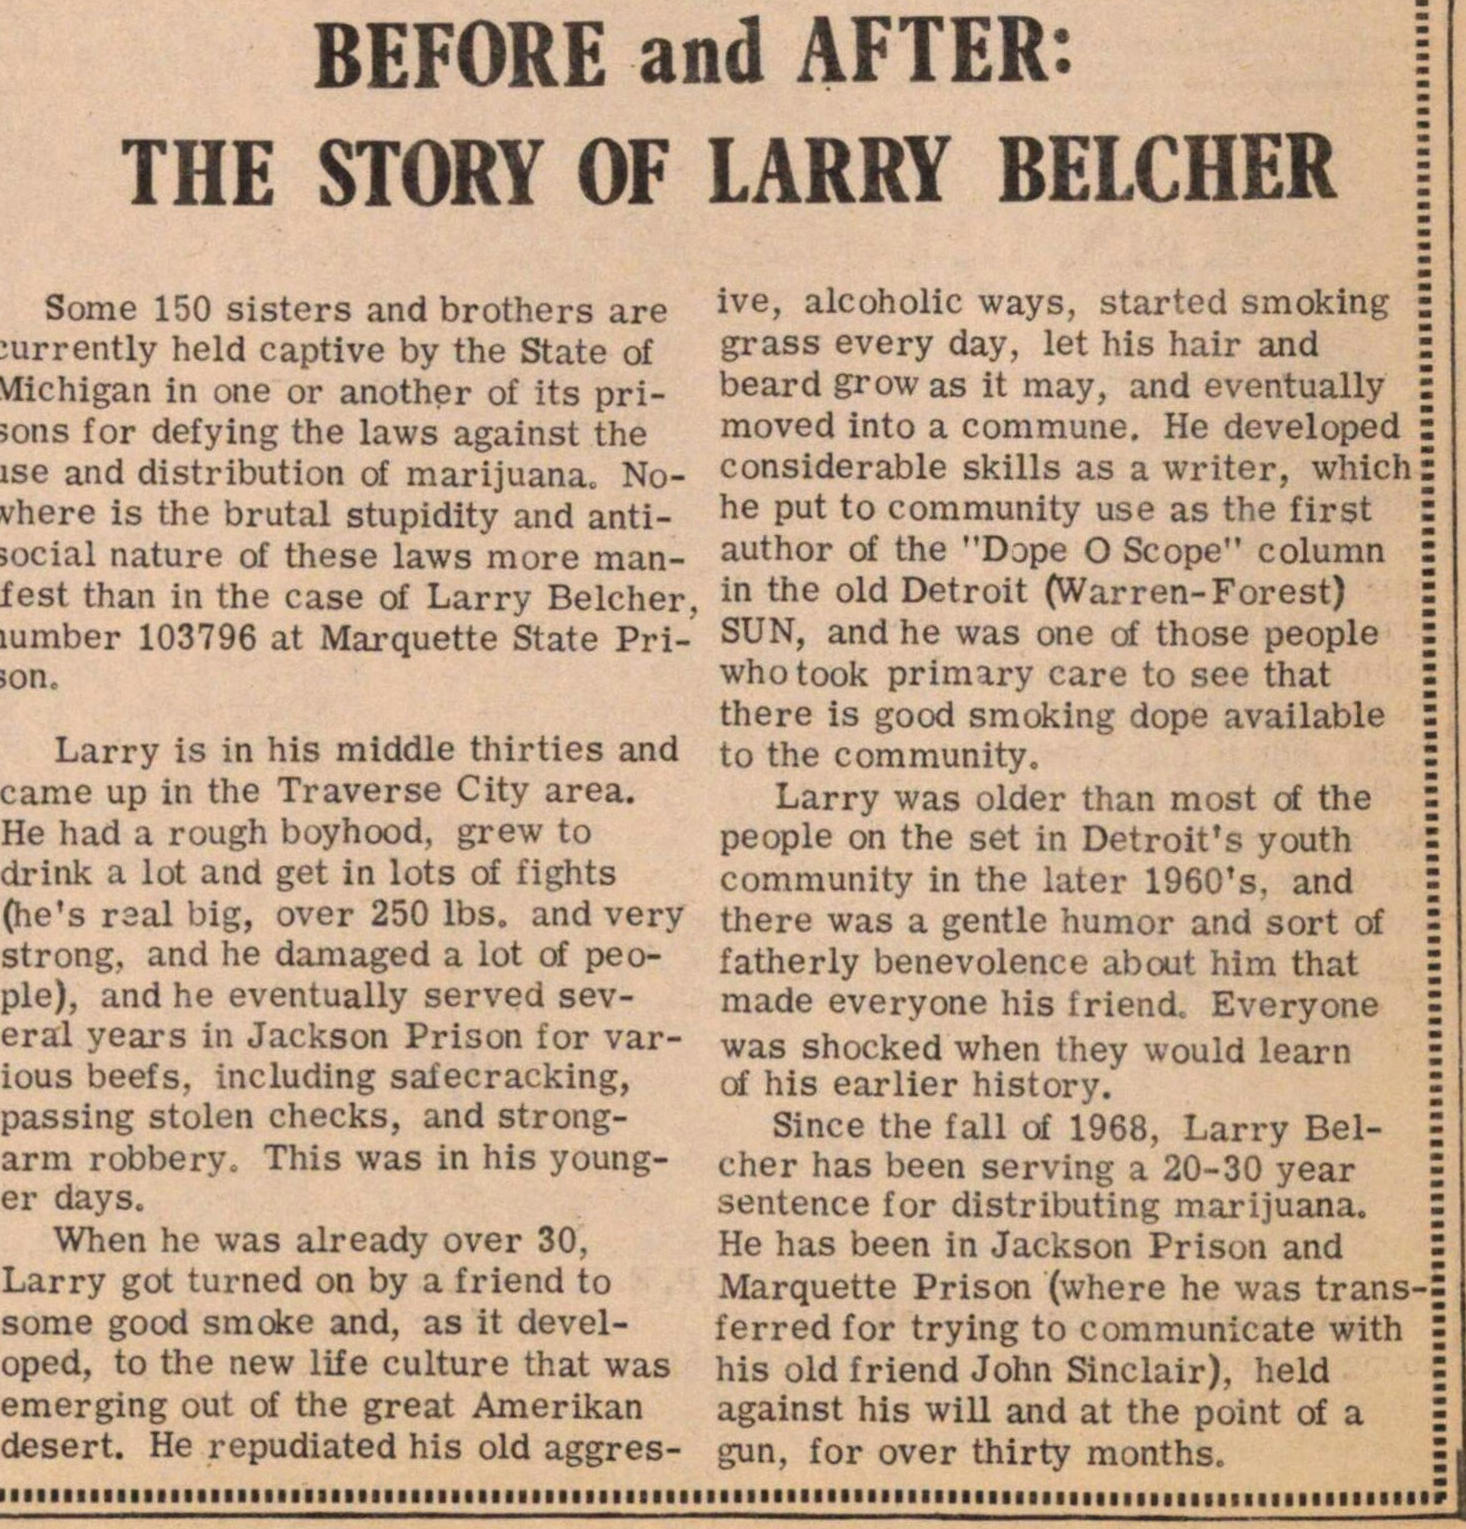 Before And After: The Story Of Larry Belcher image